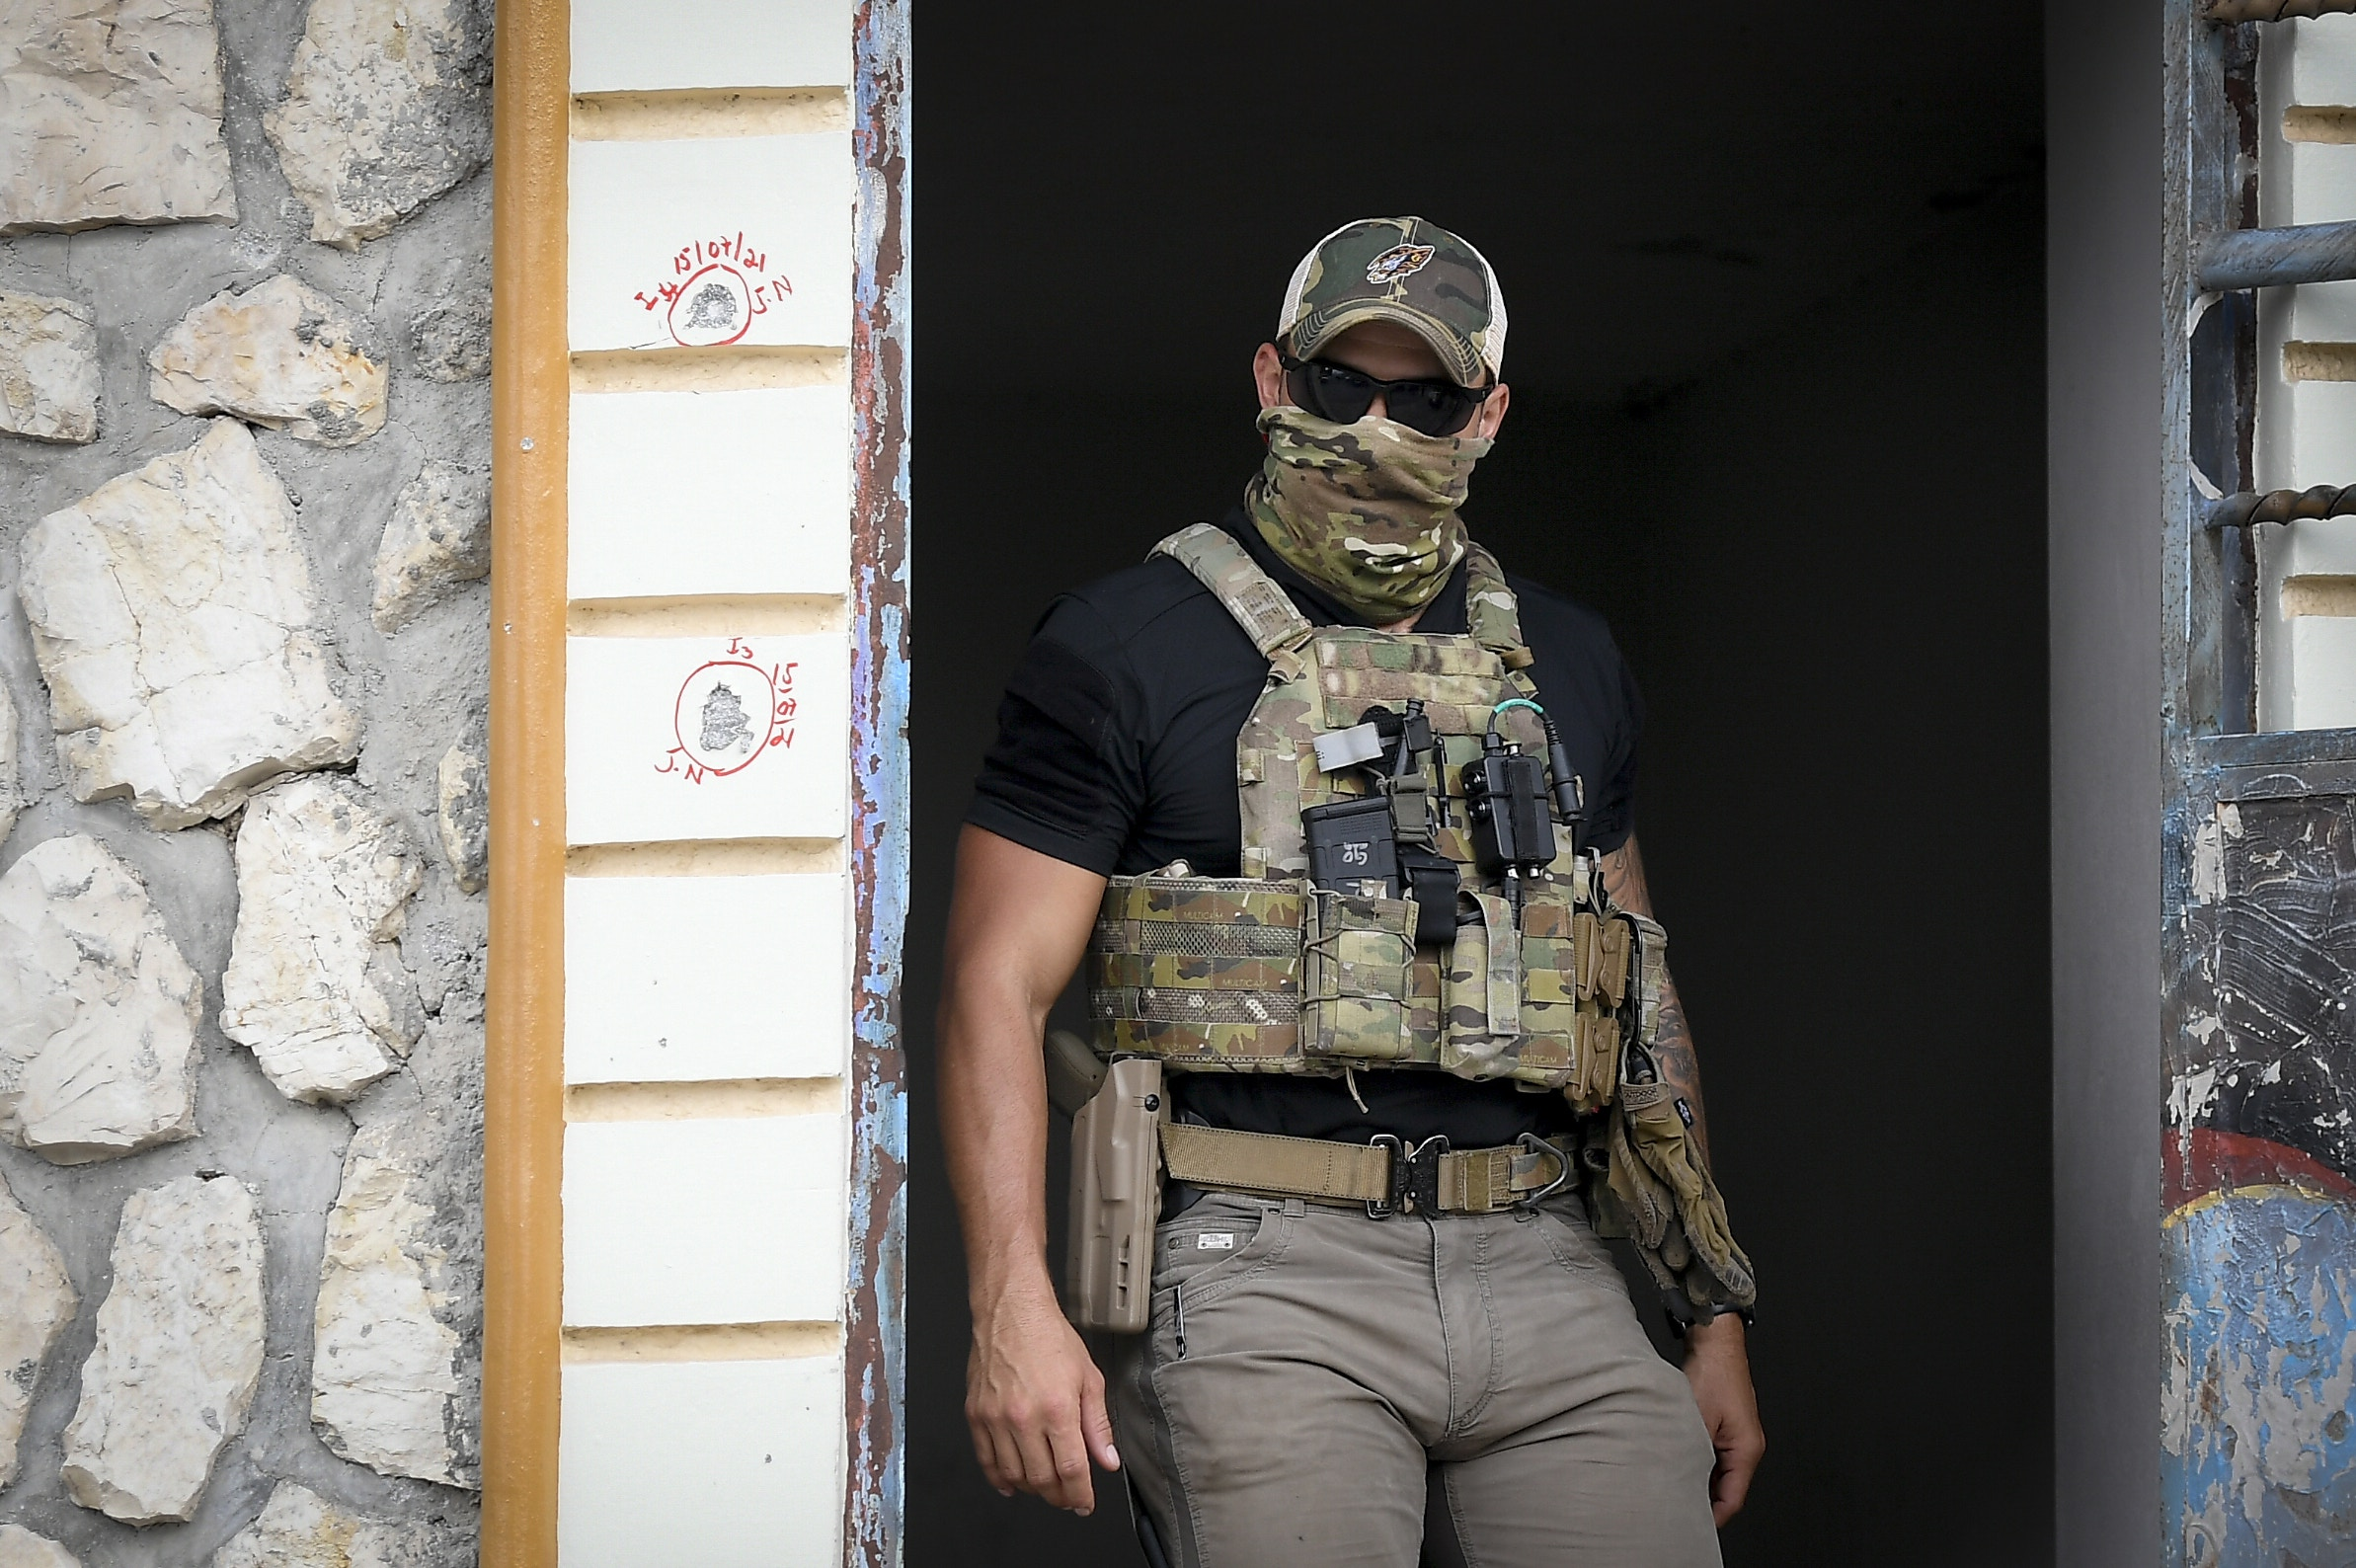 An FBI agent assisting in the investigation over the assassination of Haiti´s President Jovenel Moise leaves Moise´s residence in Port-au-Prince, Haiti, Thursday, July 15, 2021. Moise was assassinated in his home on July 7. (AP Photo/Matias Delacroix)